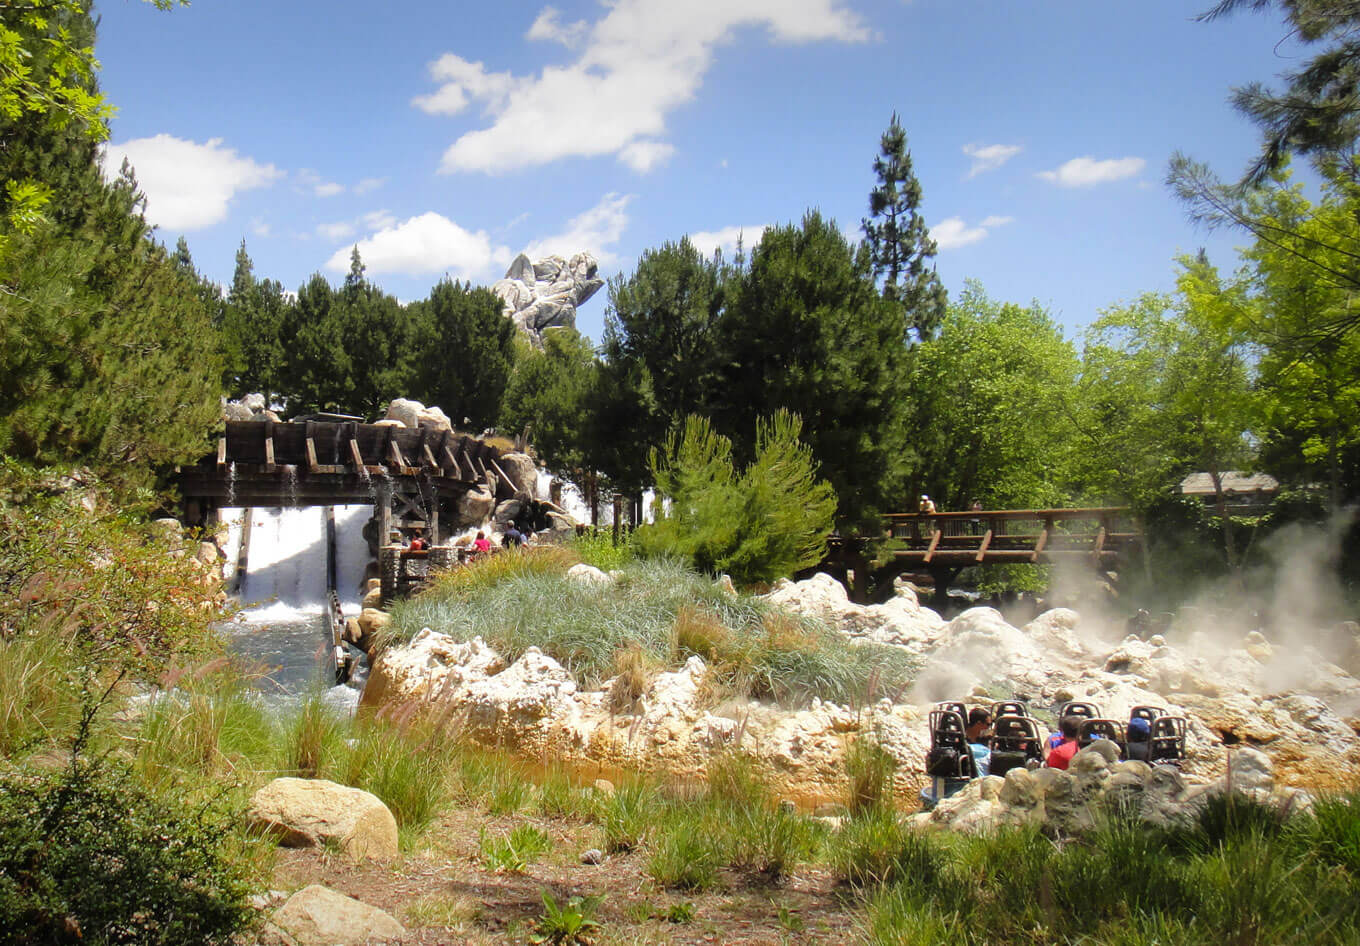 Disneyland's Top Thrill Rides - Grizzly River Run